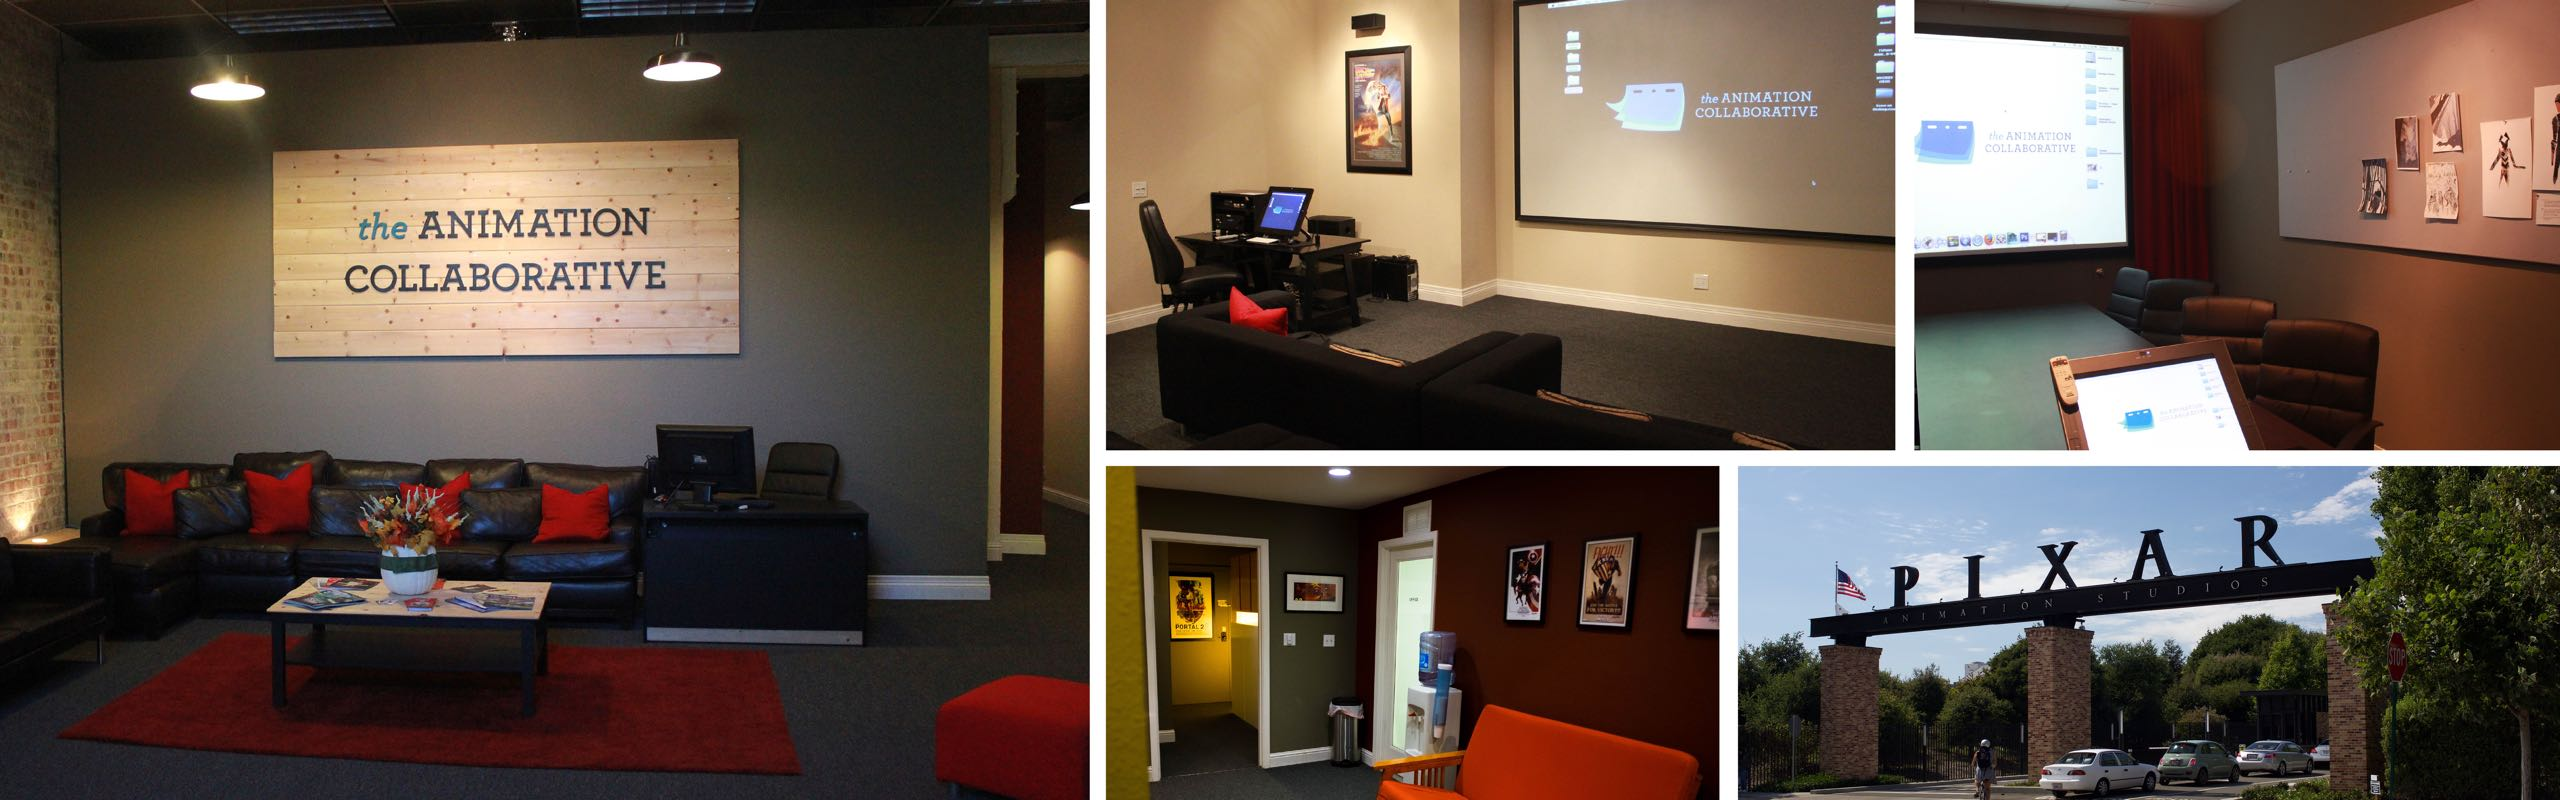 Pictures of the interior of the Animation Collaborative